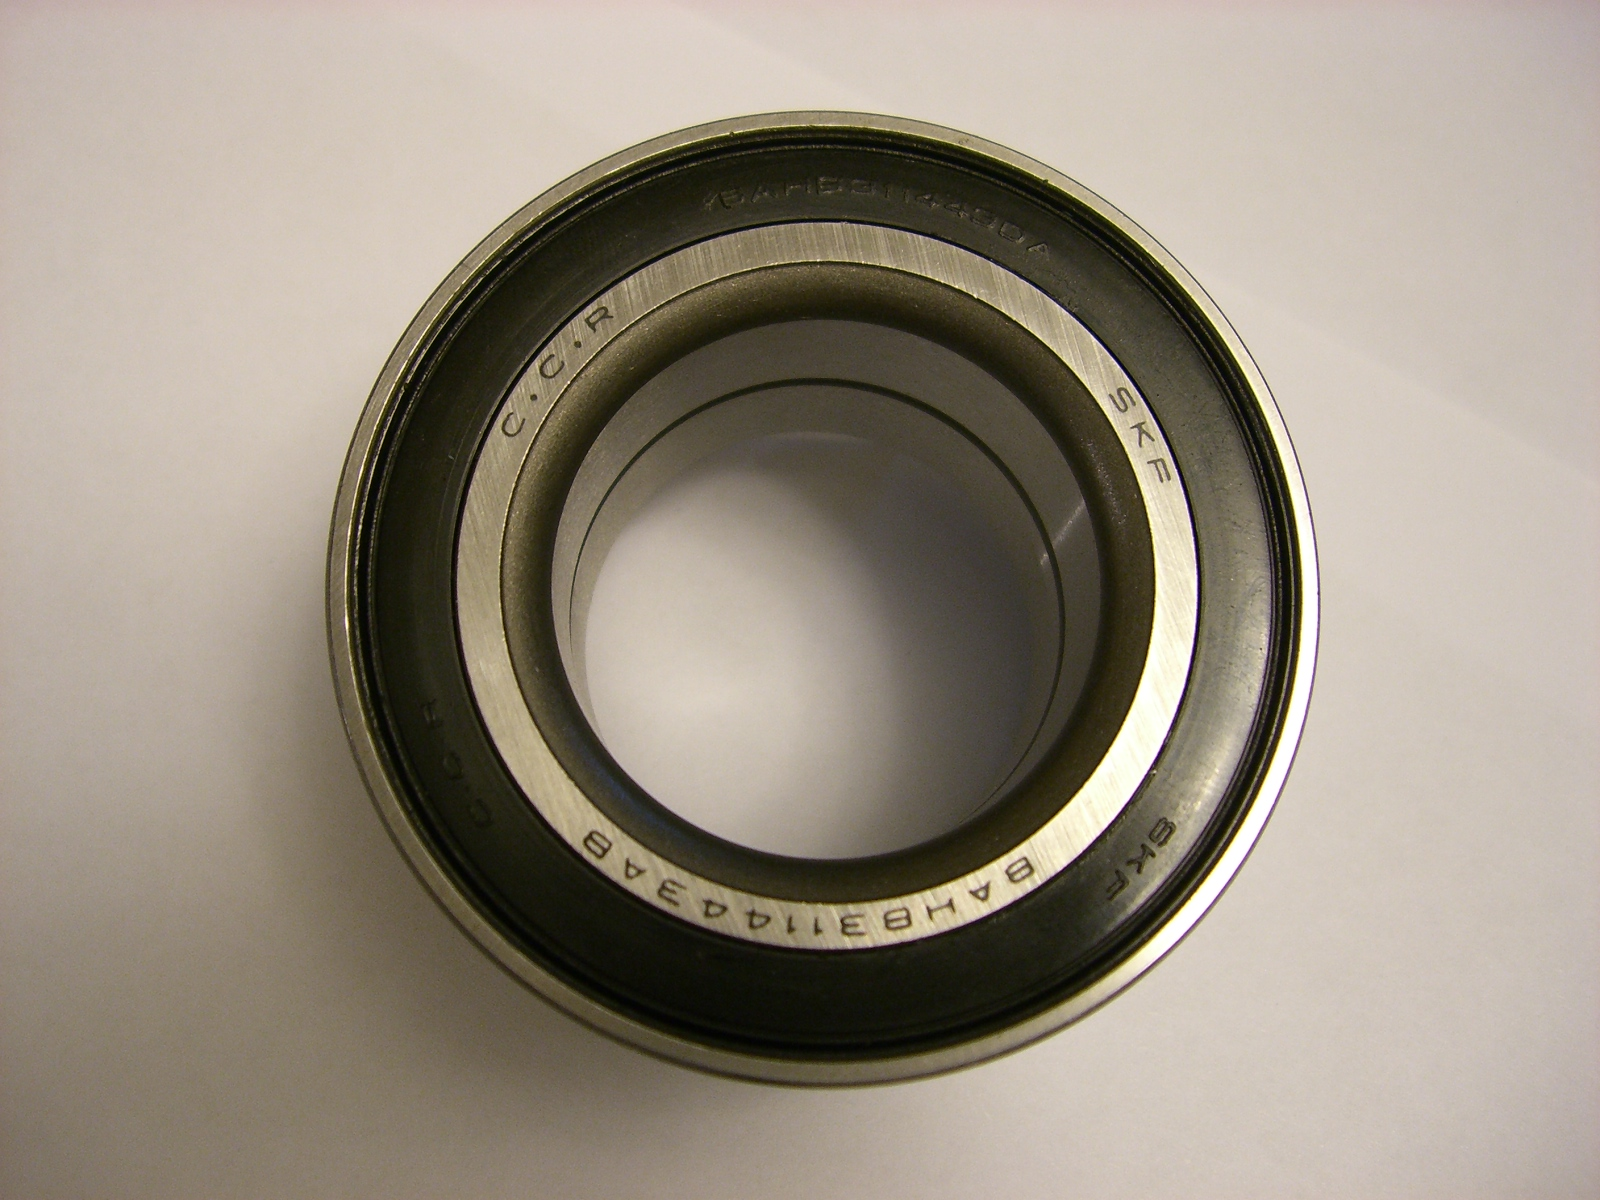 Bogus Bearings Look More Real Than The Real Ones